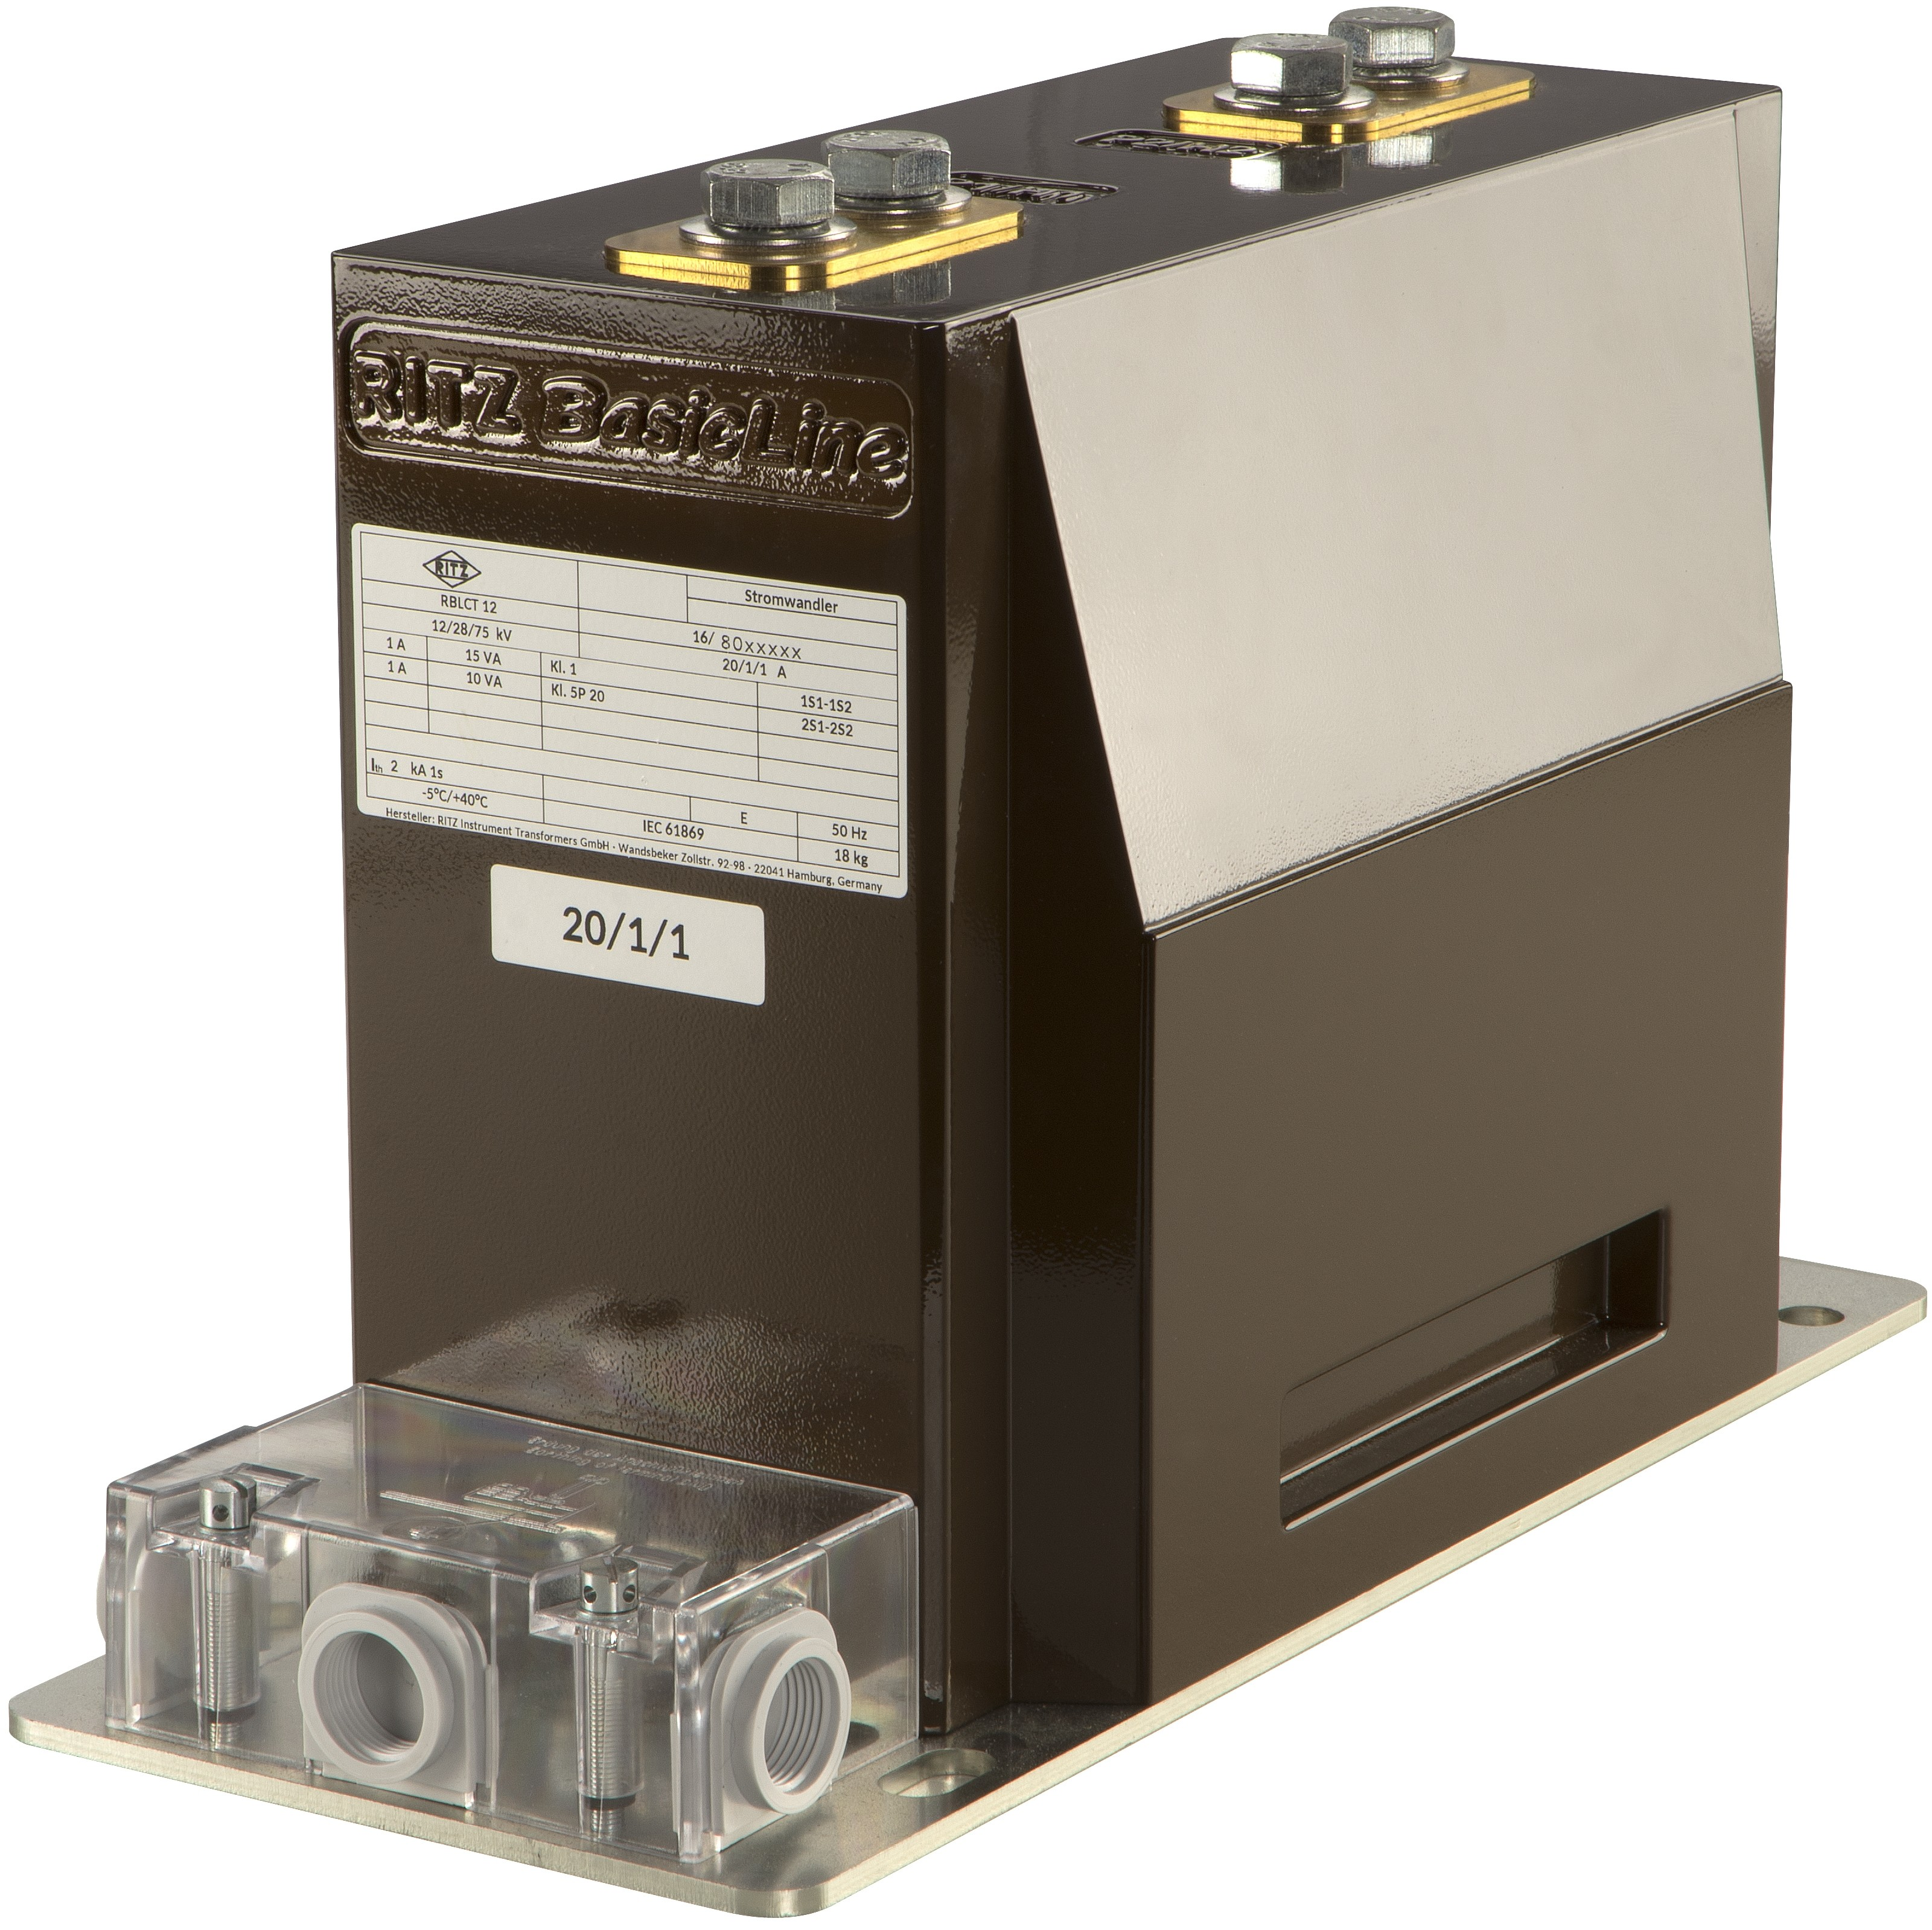 RBLCT12 | 17,5 | 24  BasicLine Indoor Current Transformer Support CT, Block-Type CT, narrow design